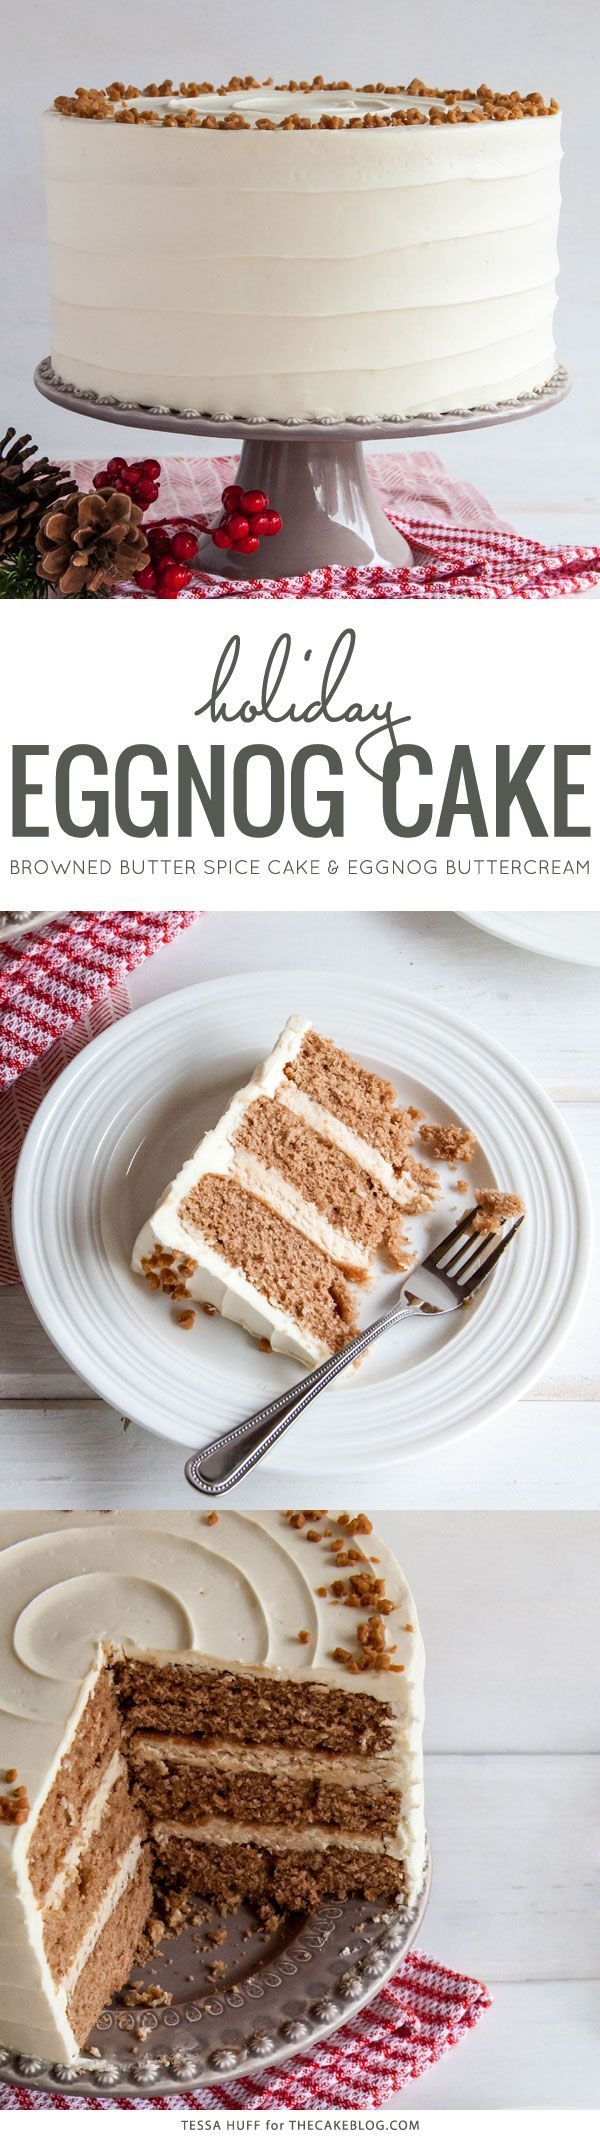 Eggnog Cake! A browned butter spice cake with eggnog buttercream ...